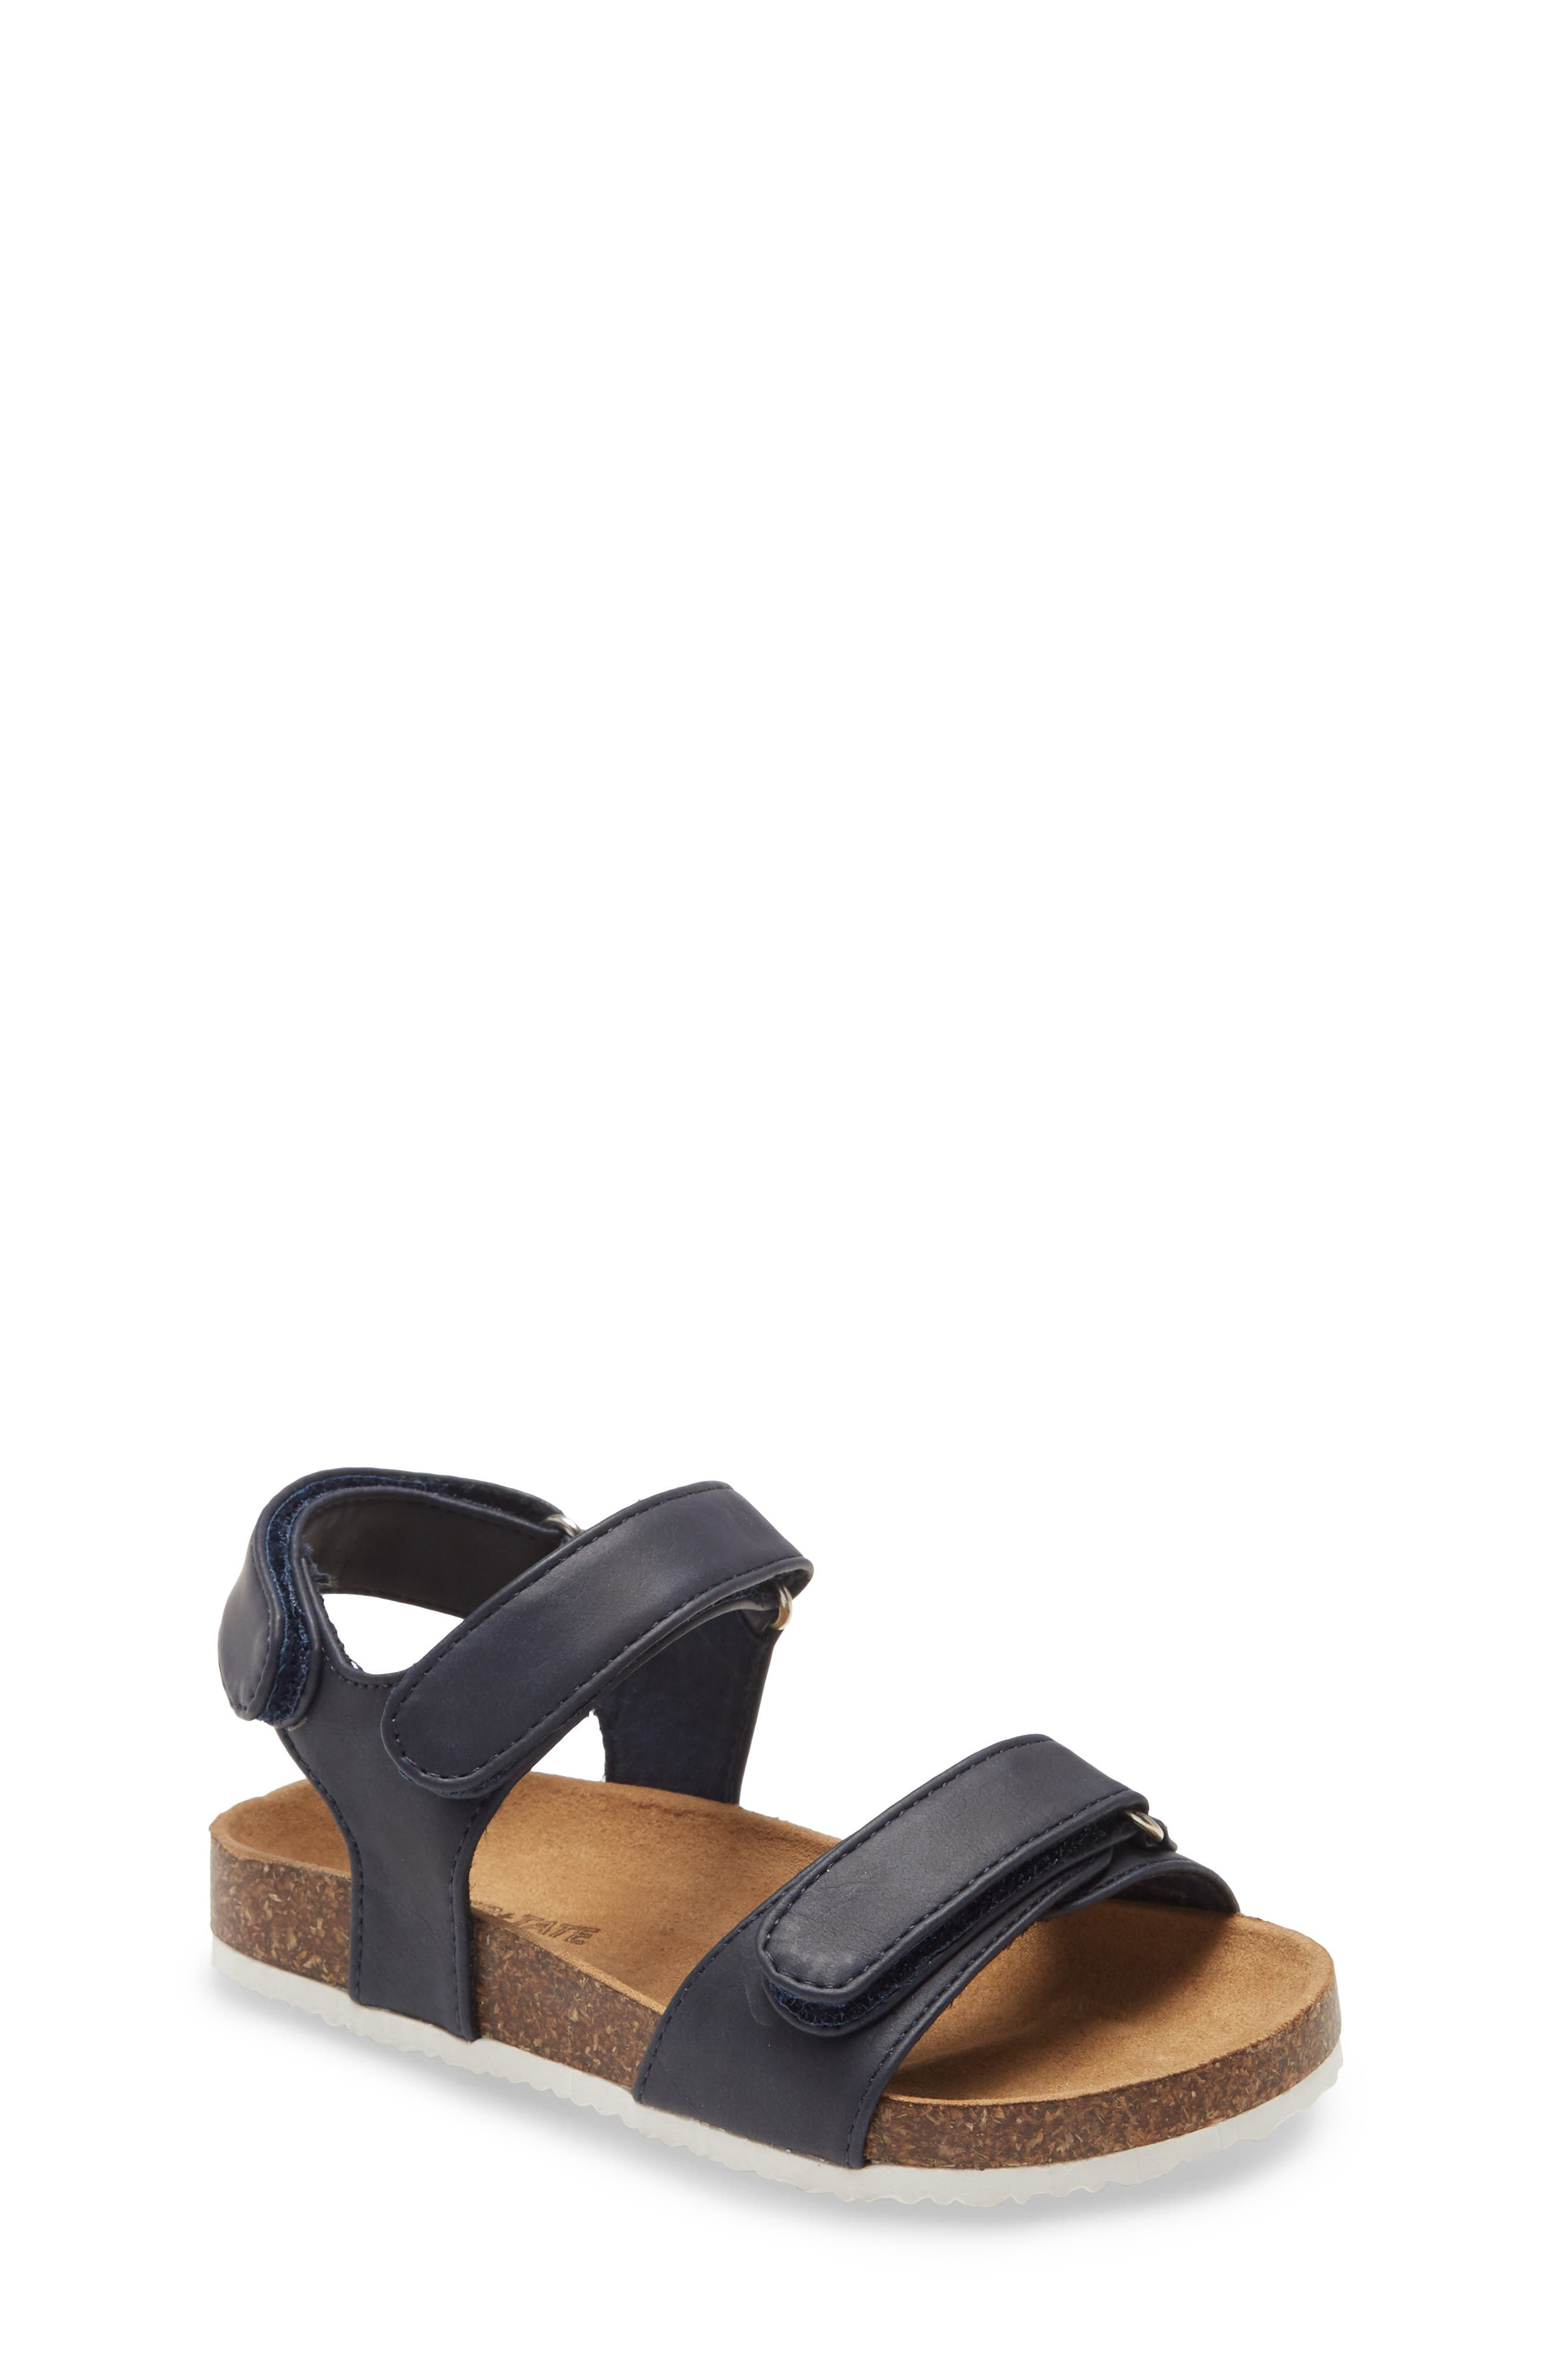 Your little one will love running through a sunny day in this lightweight sandal with a supportive, contoured footbed and adjustable just-right straps. Style Name: Tucker + Tate Double Strap Sandal (Walker & Toddler). Style Number: 5941052. Available in stores.